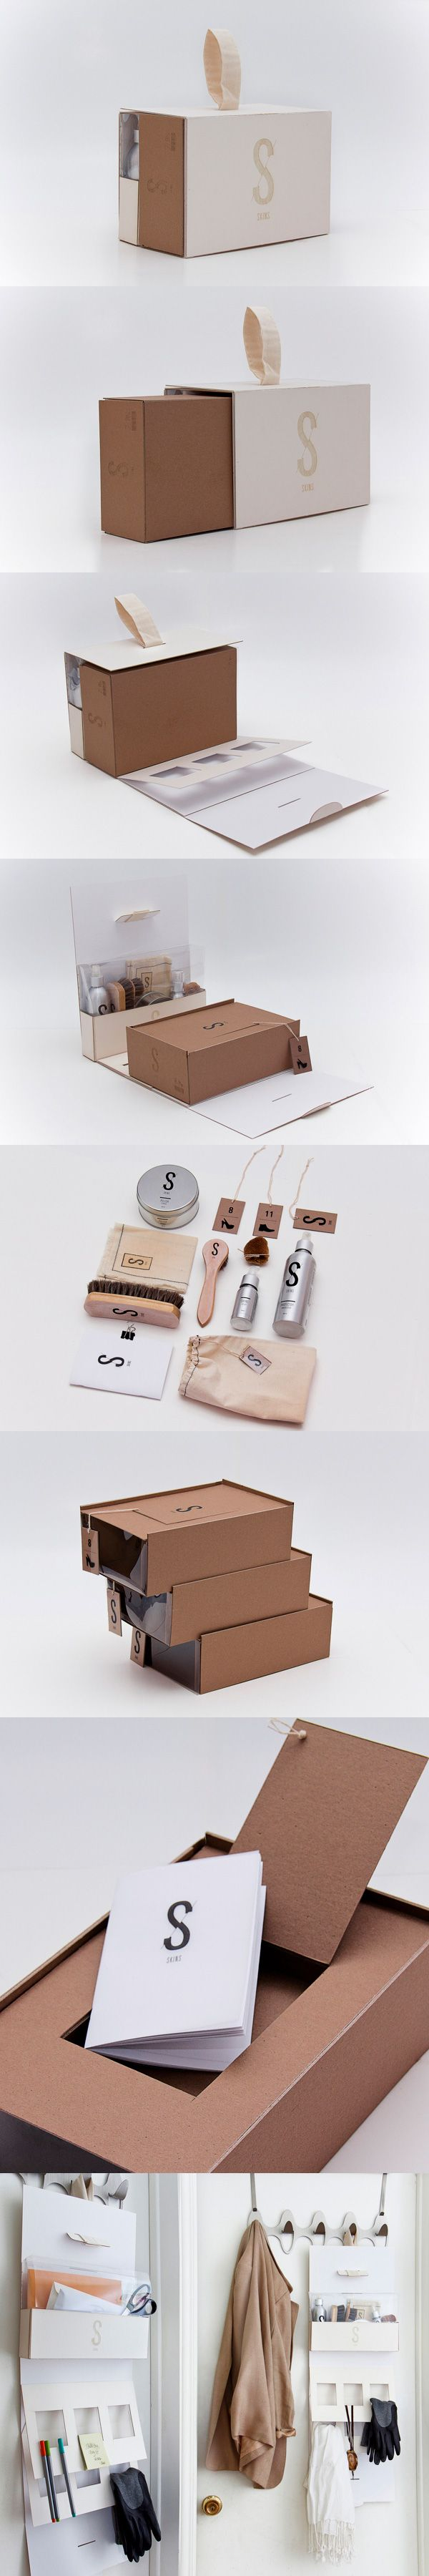 "헤어용품 이길래~ SKINS Shoe shine ""Box""/Organizer Concept by Jiani Lu 